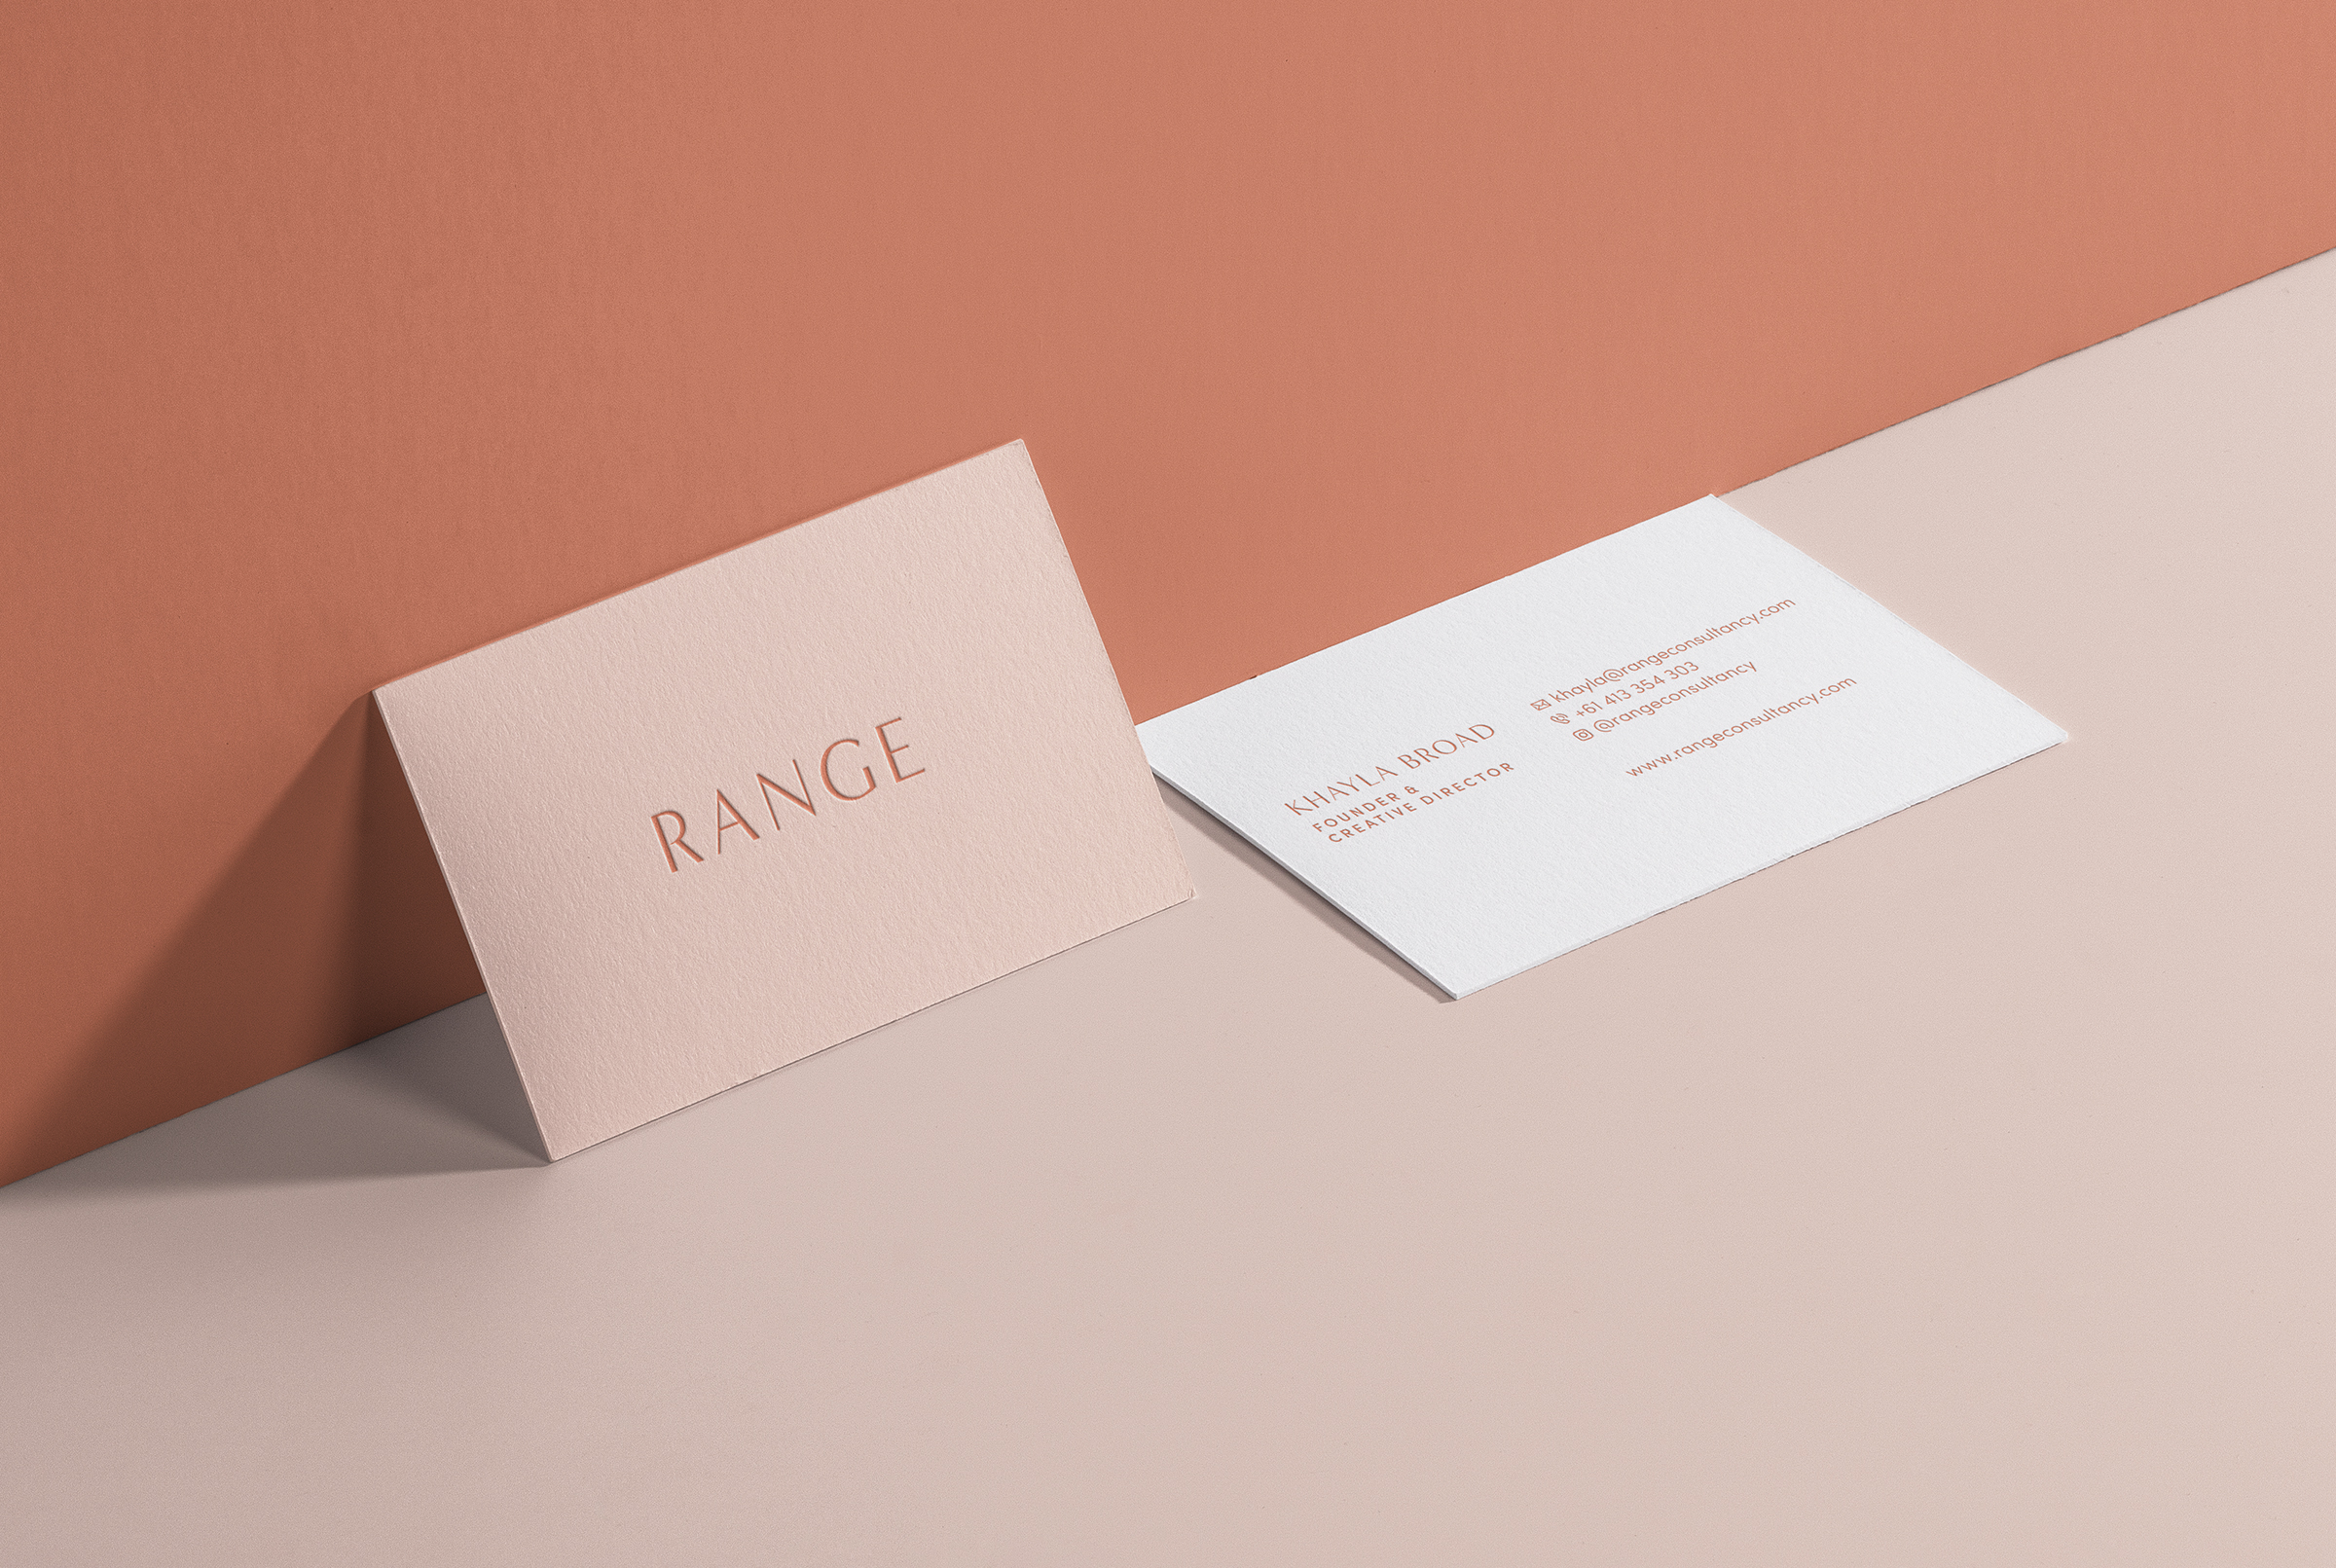 02_Range_Consultancy_Business_Cards_by_Foster.jpg